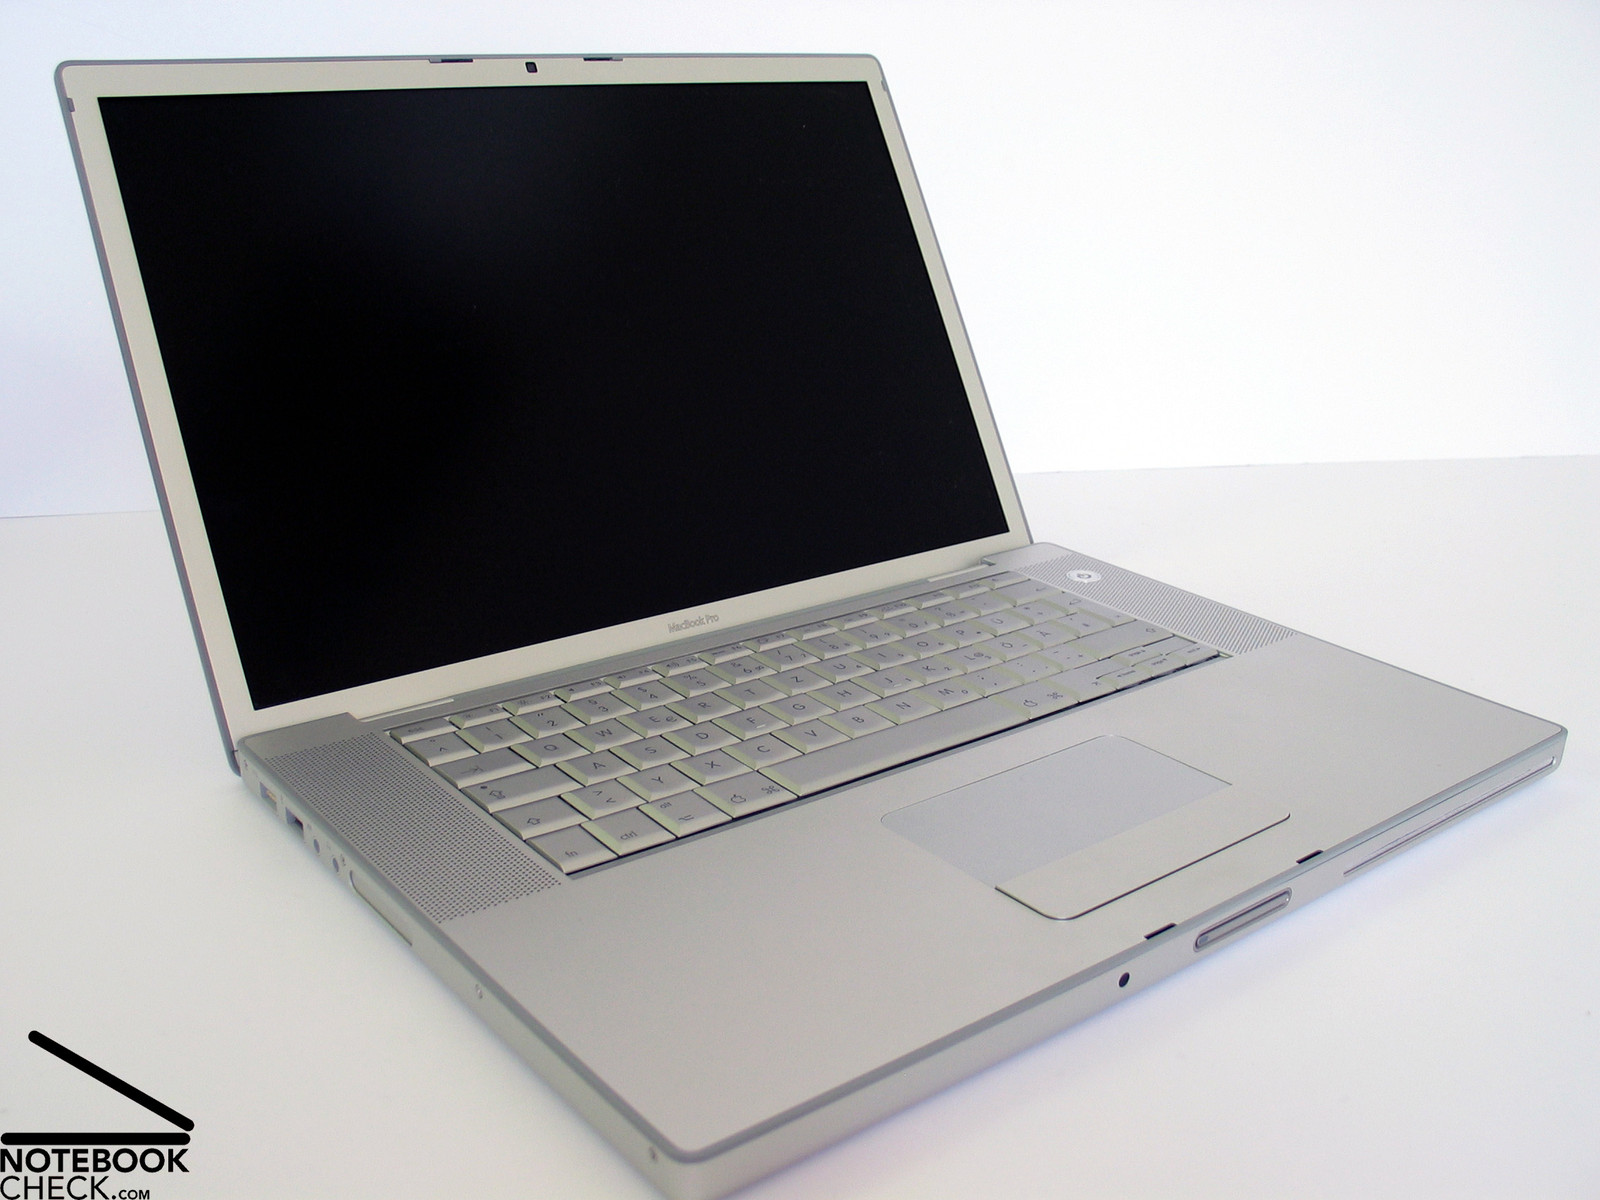 macbook pro 15 - photo #26